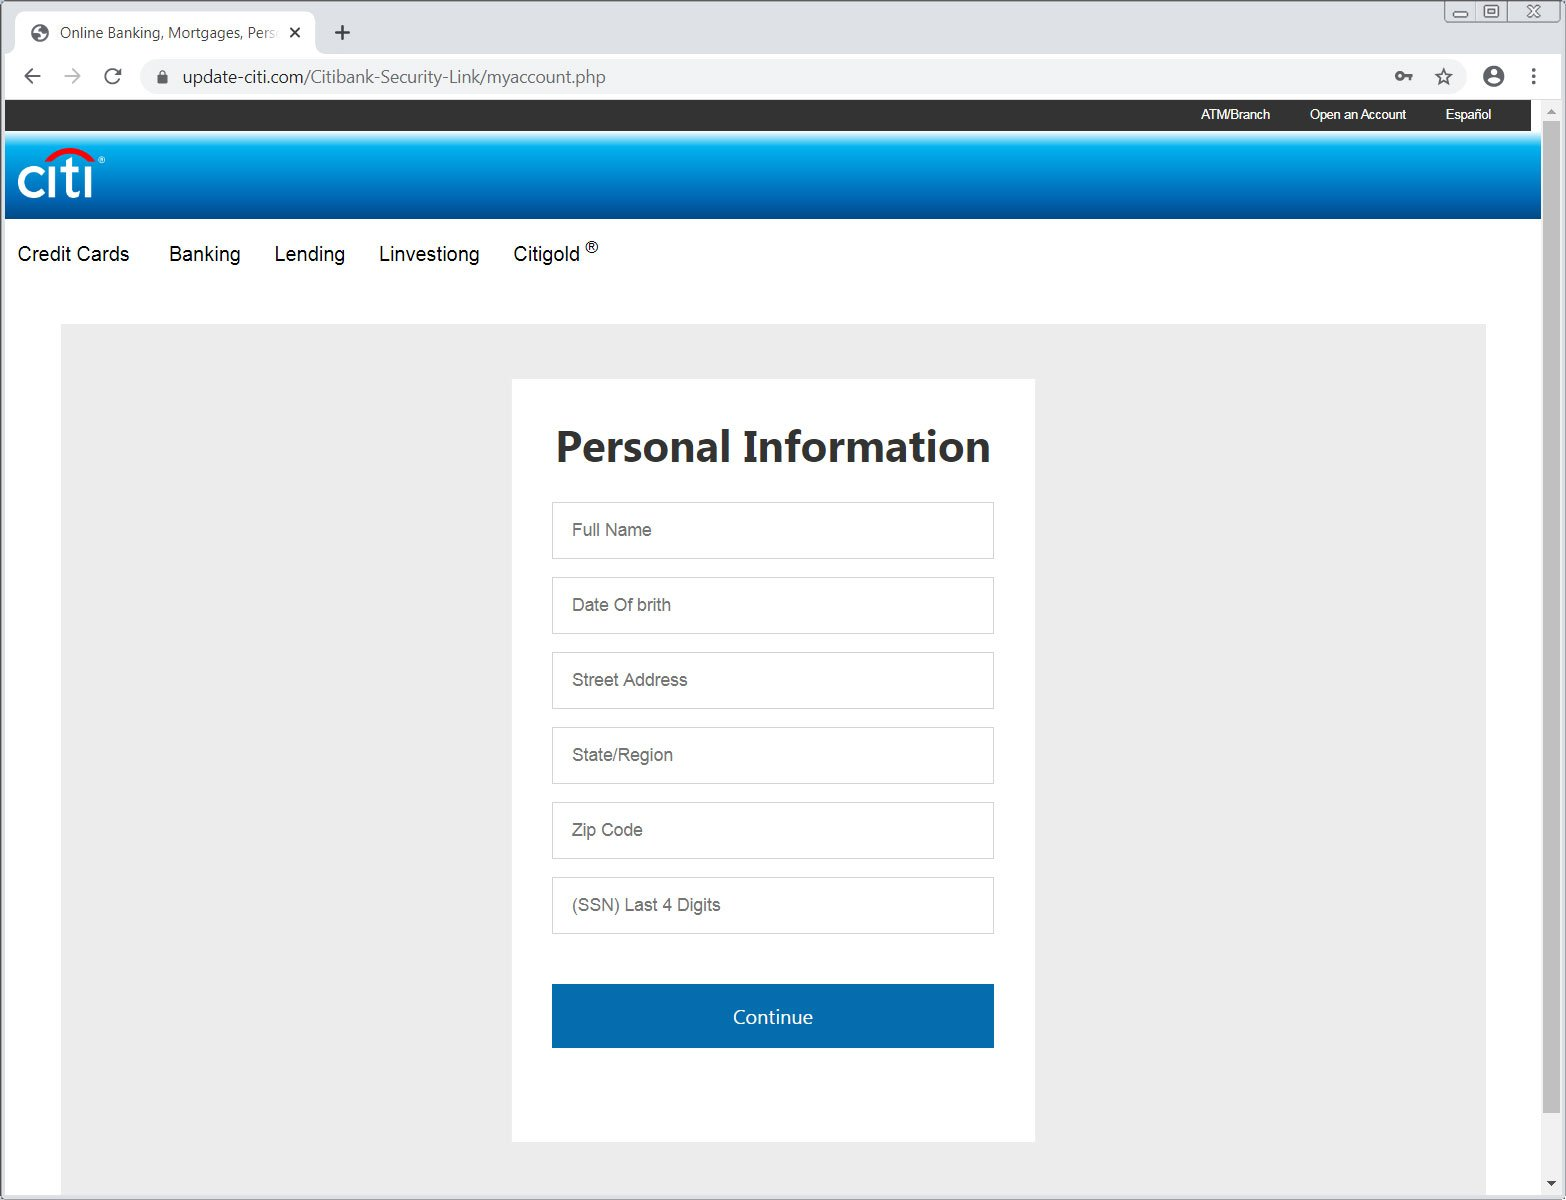 Requesting personal information